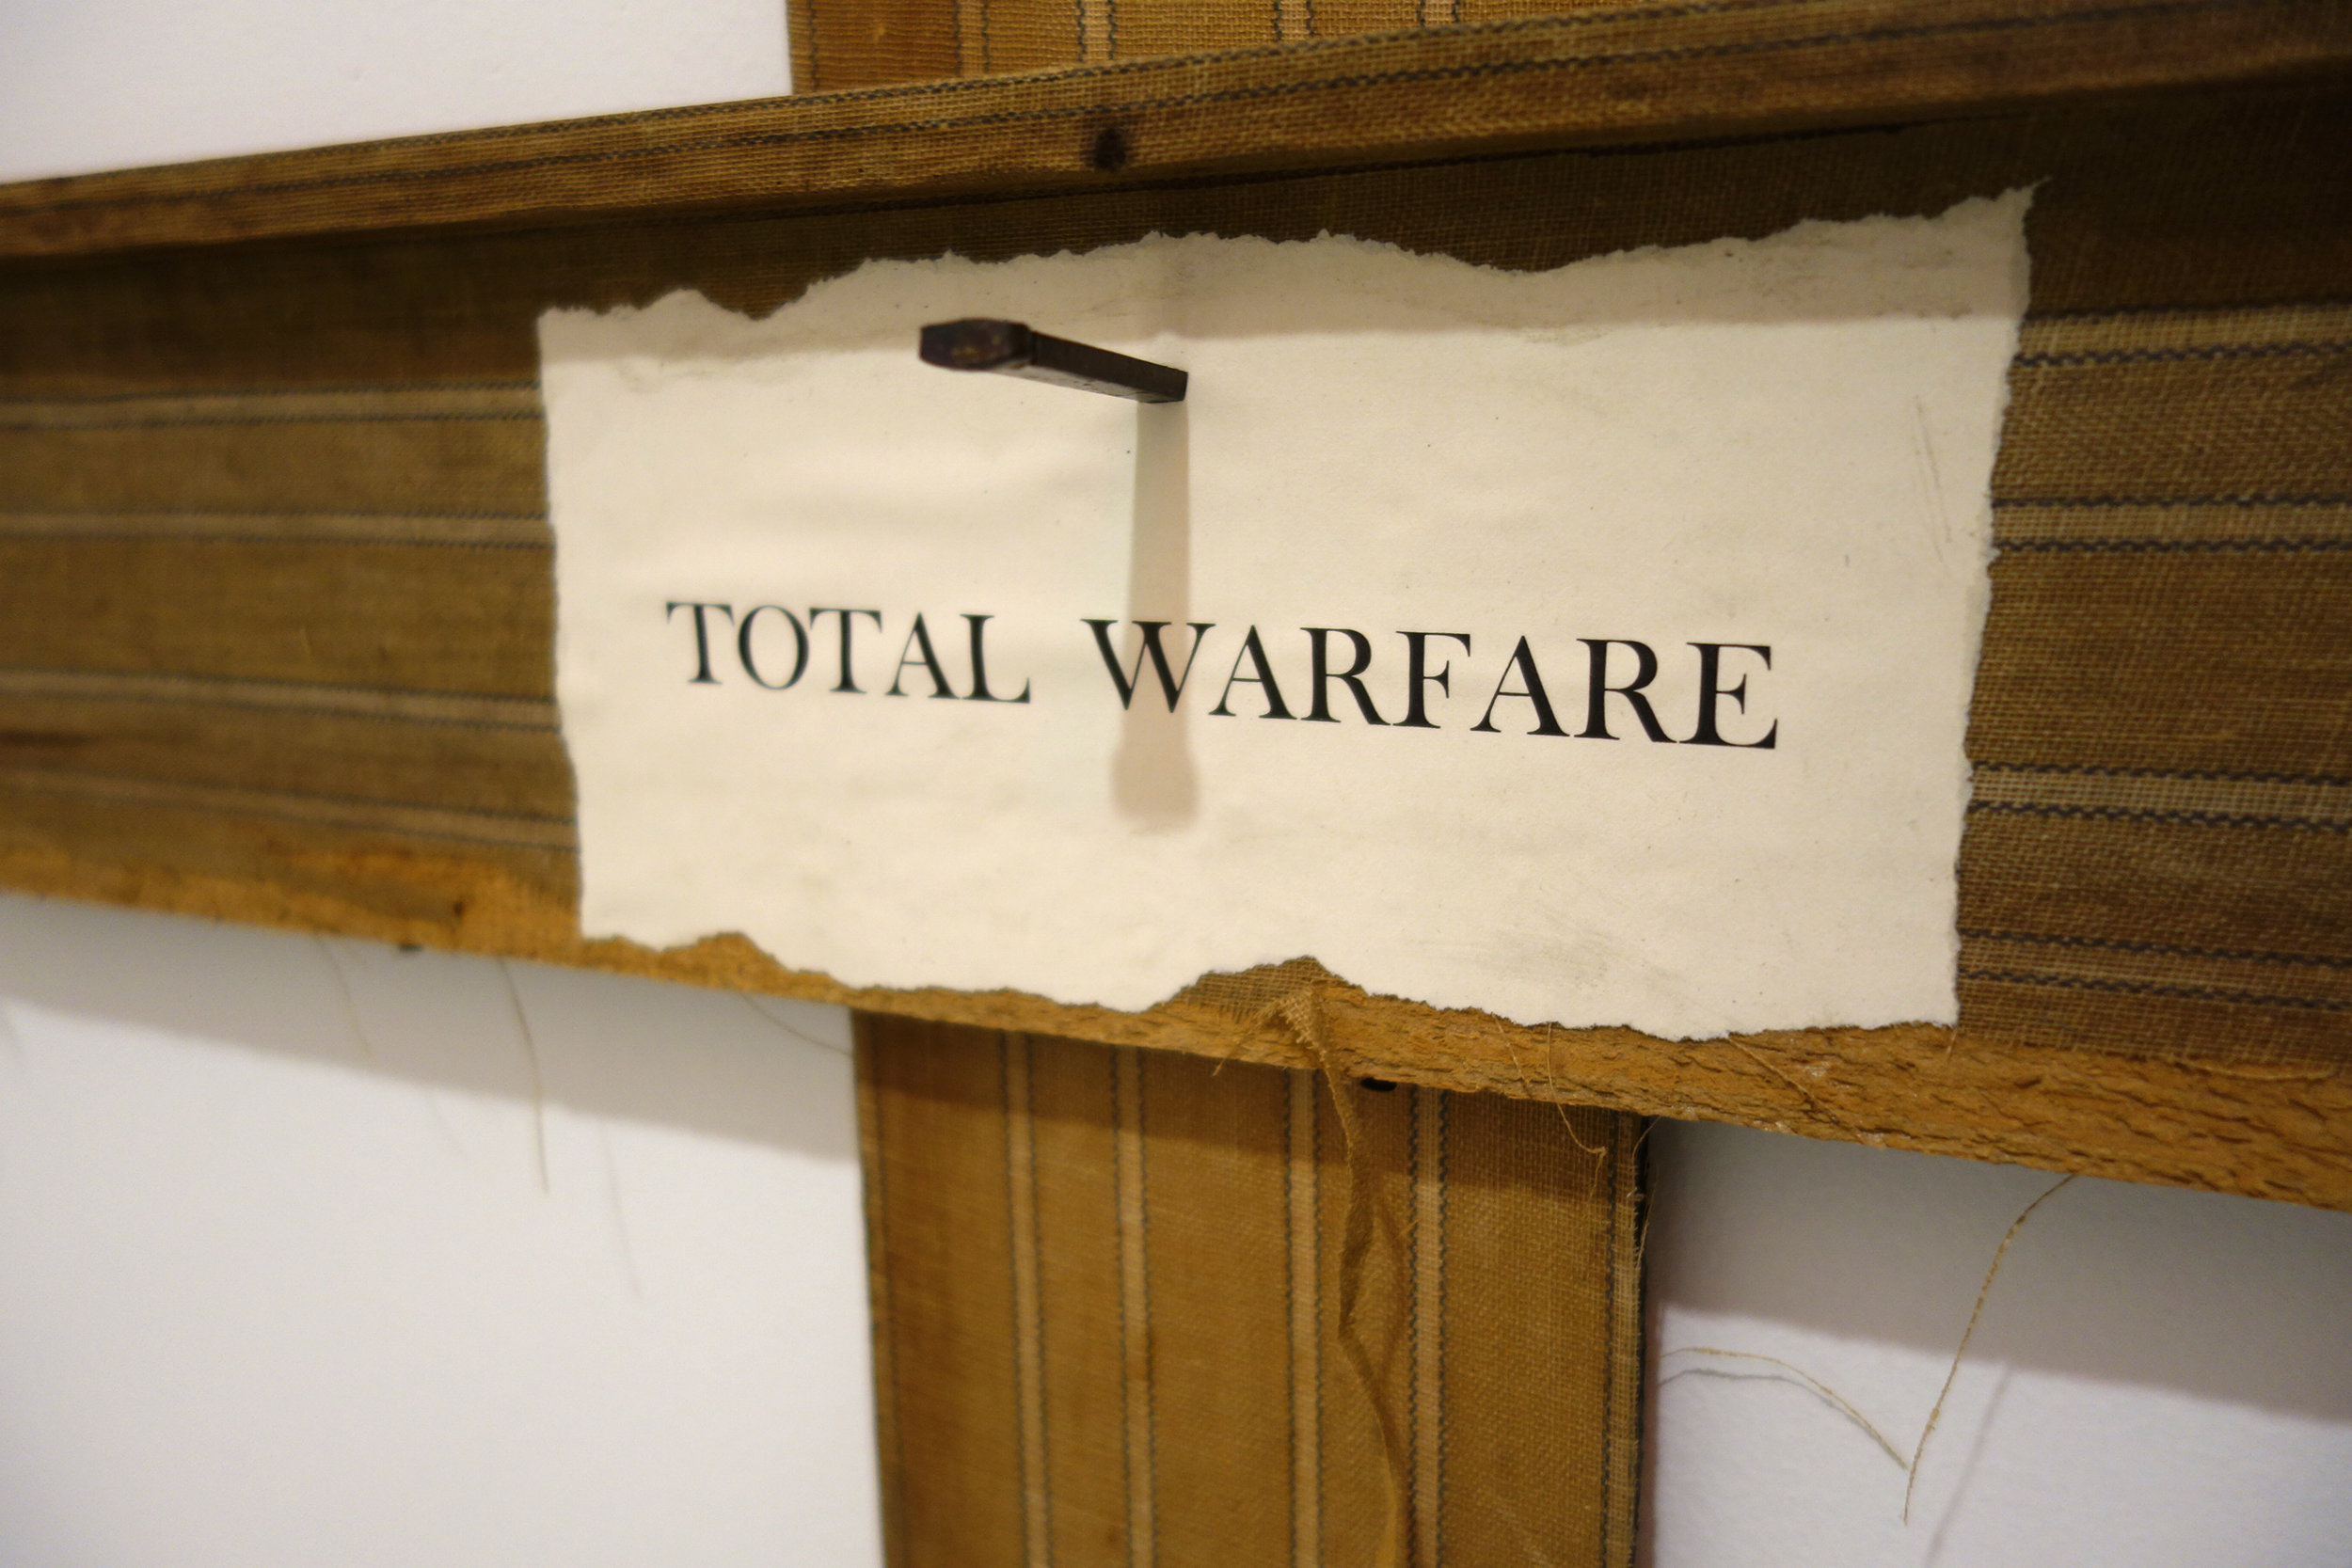 Total Warfare (detail).jpg